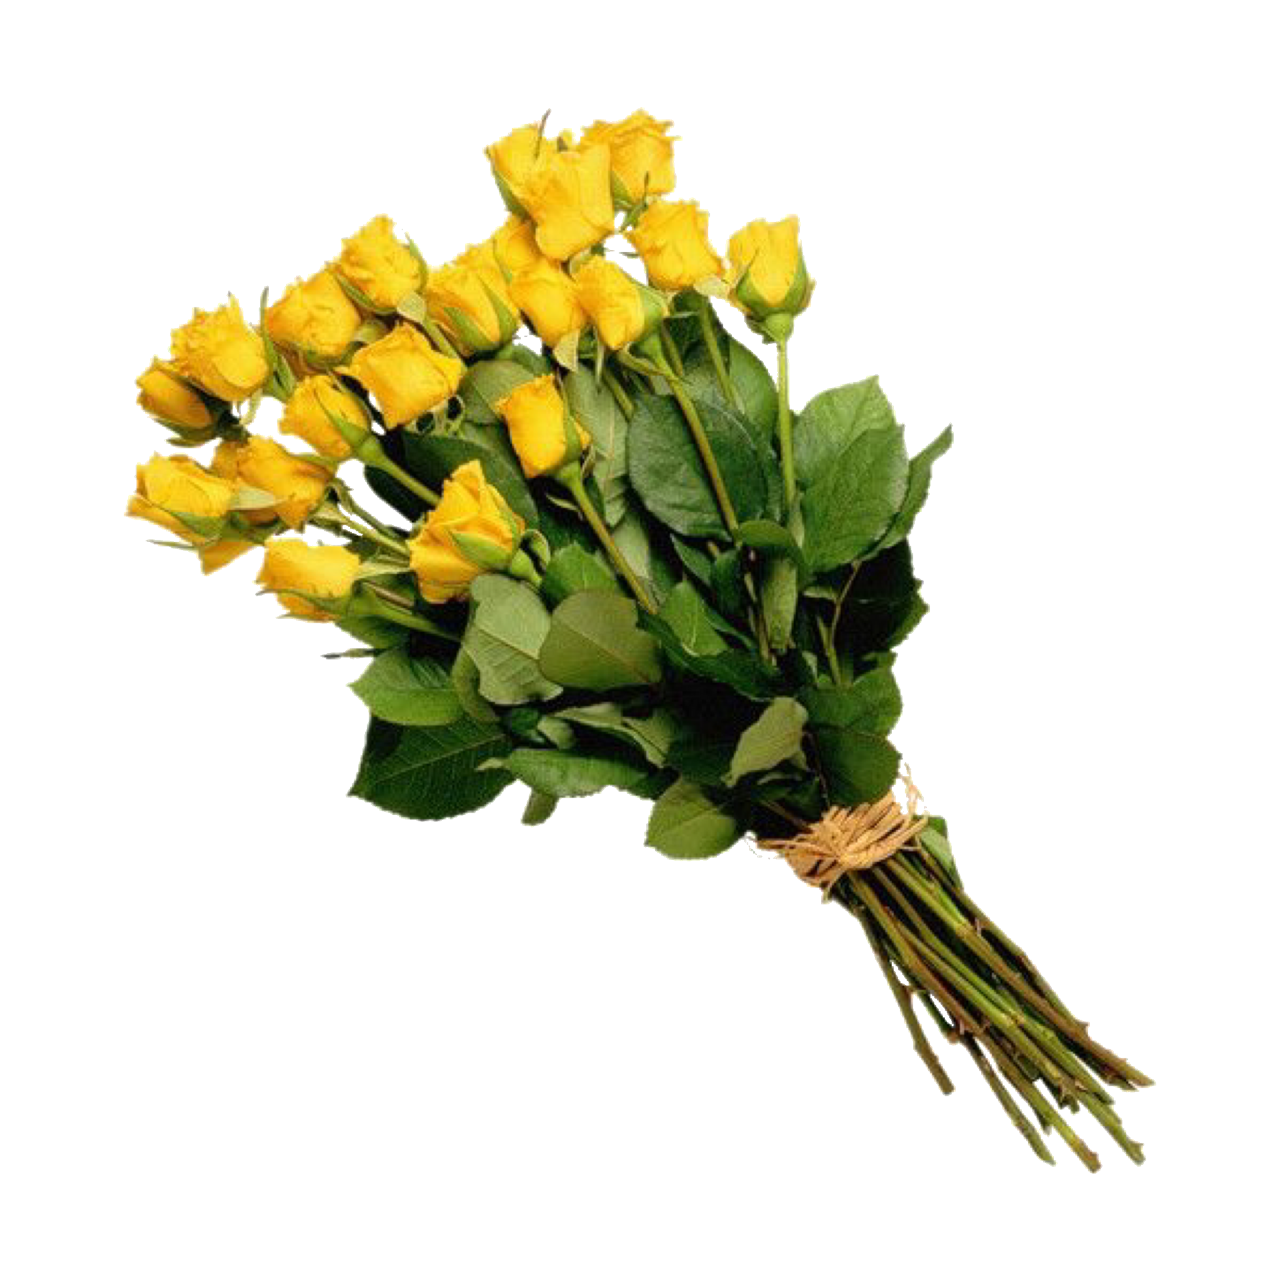 Pin by Sophia on pngs in 2019 Yellow rose bouquet